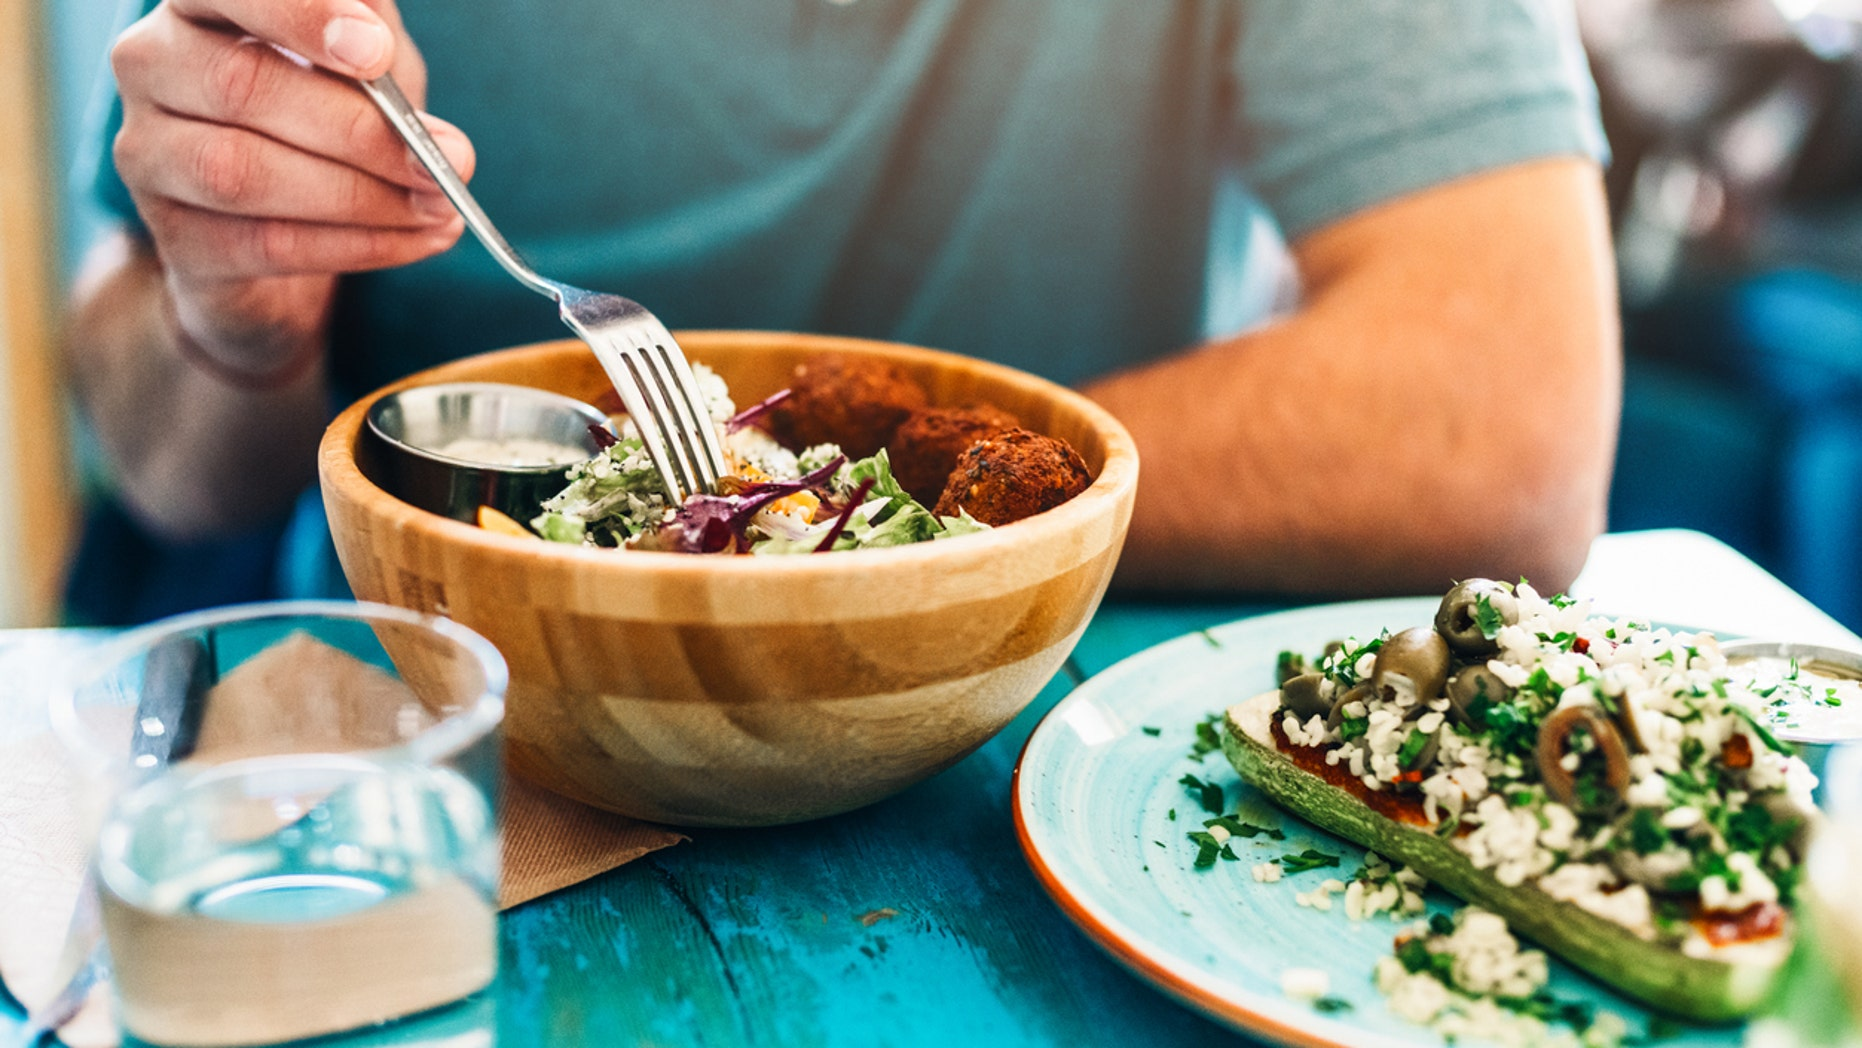 Westlake Legal Group iStock-1140201336 Intermittent fasting sheds more weight, but Mediterranean still healthier overall, study claims SWNS fox-news/health/nutrition-and-fitness/diet-trends fox-news/food-drink/food/healthy-foods fox-news/food-drink/food/food-trends fnc/food-drink fnc article 1dbe1aa5-4df6-56cf-b648-55ae8e24d3e7